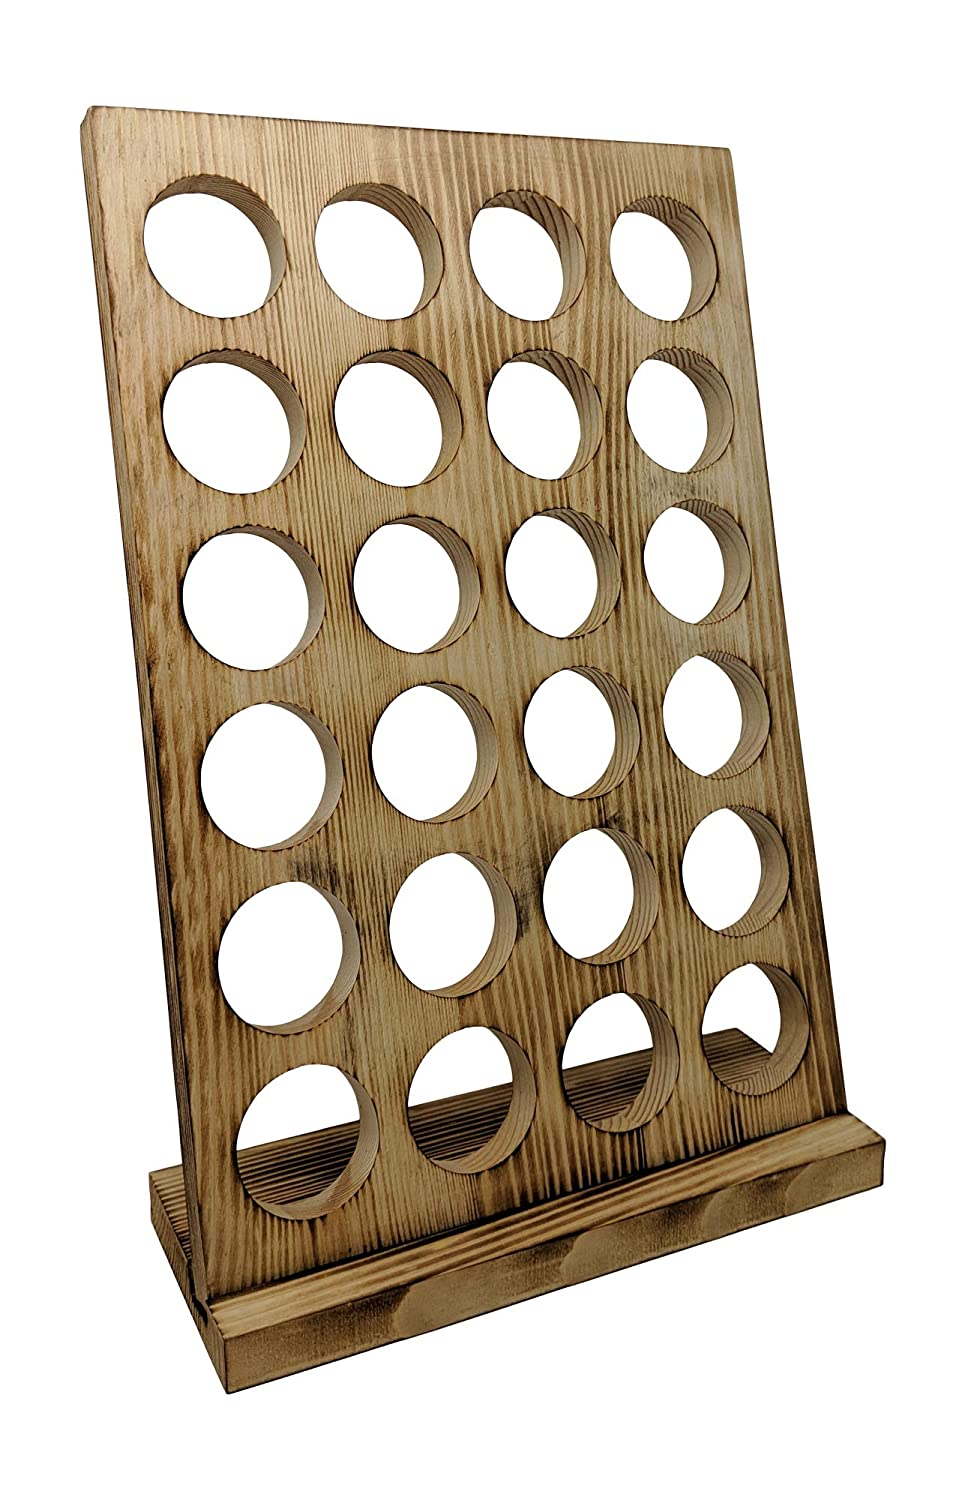 Gianna's Home Rustic Farmhouse Country Distressed Wood Coffee Pod Holder For K-Cups, 24 Capacity (Torched Wood)